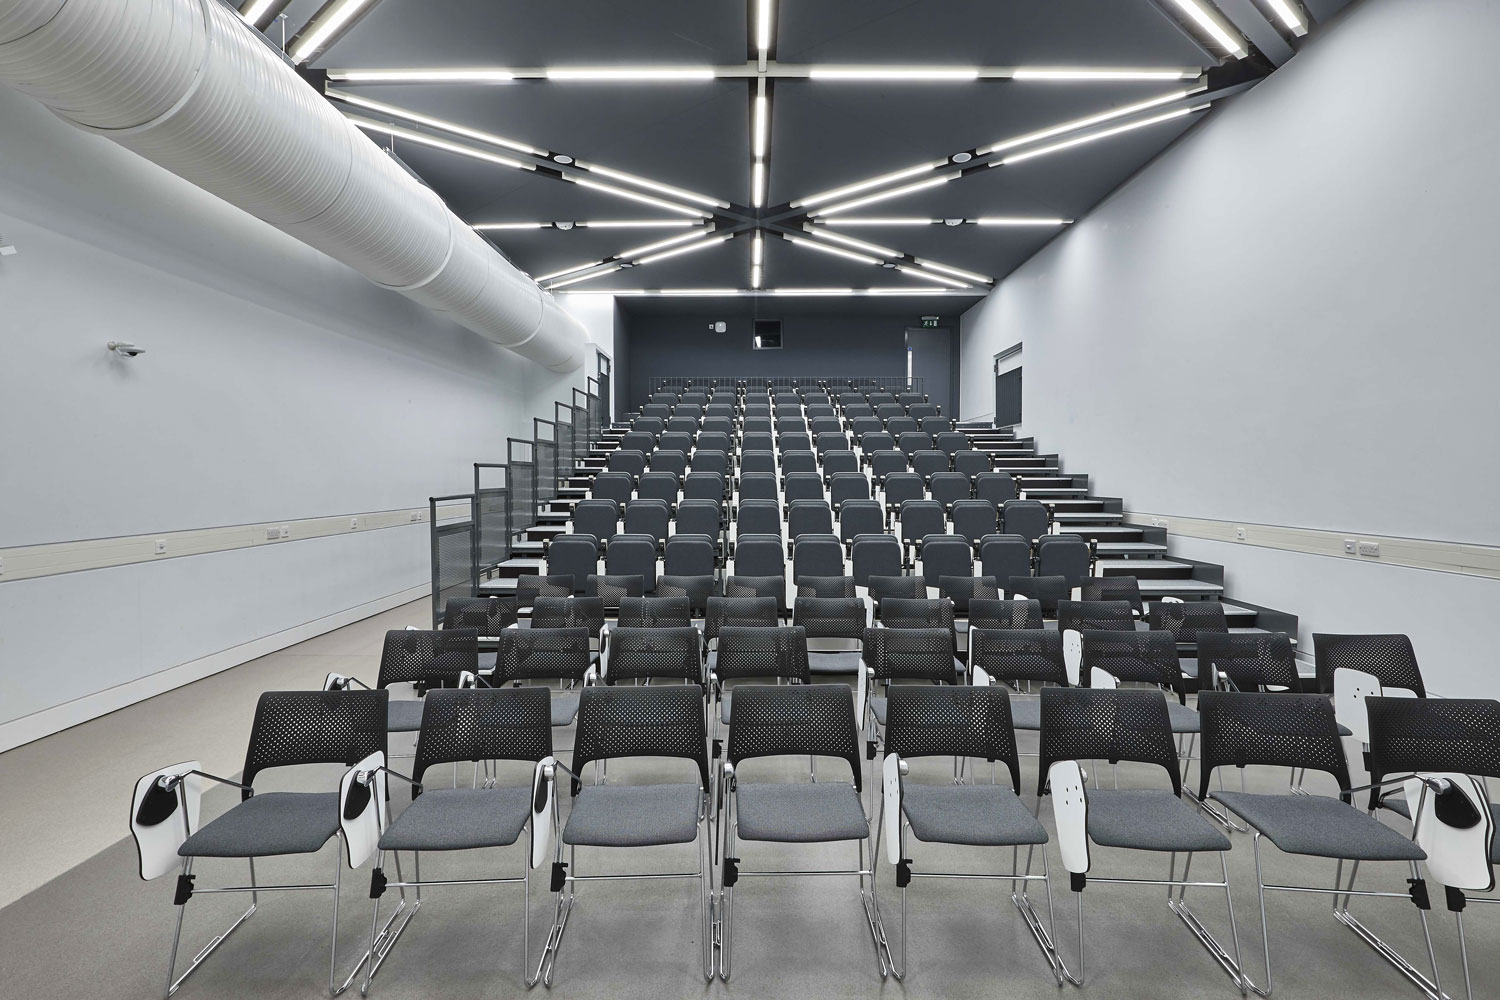 School of Art Lecture Theatre, Southampton University, Winchester | Architectural Installation Photography